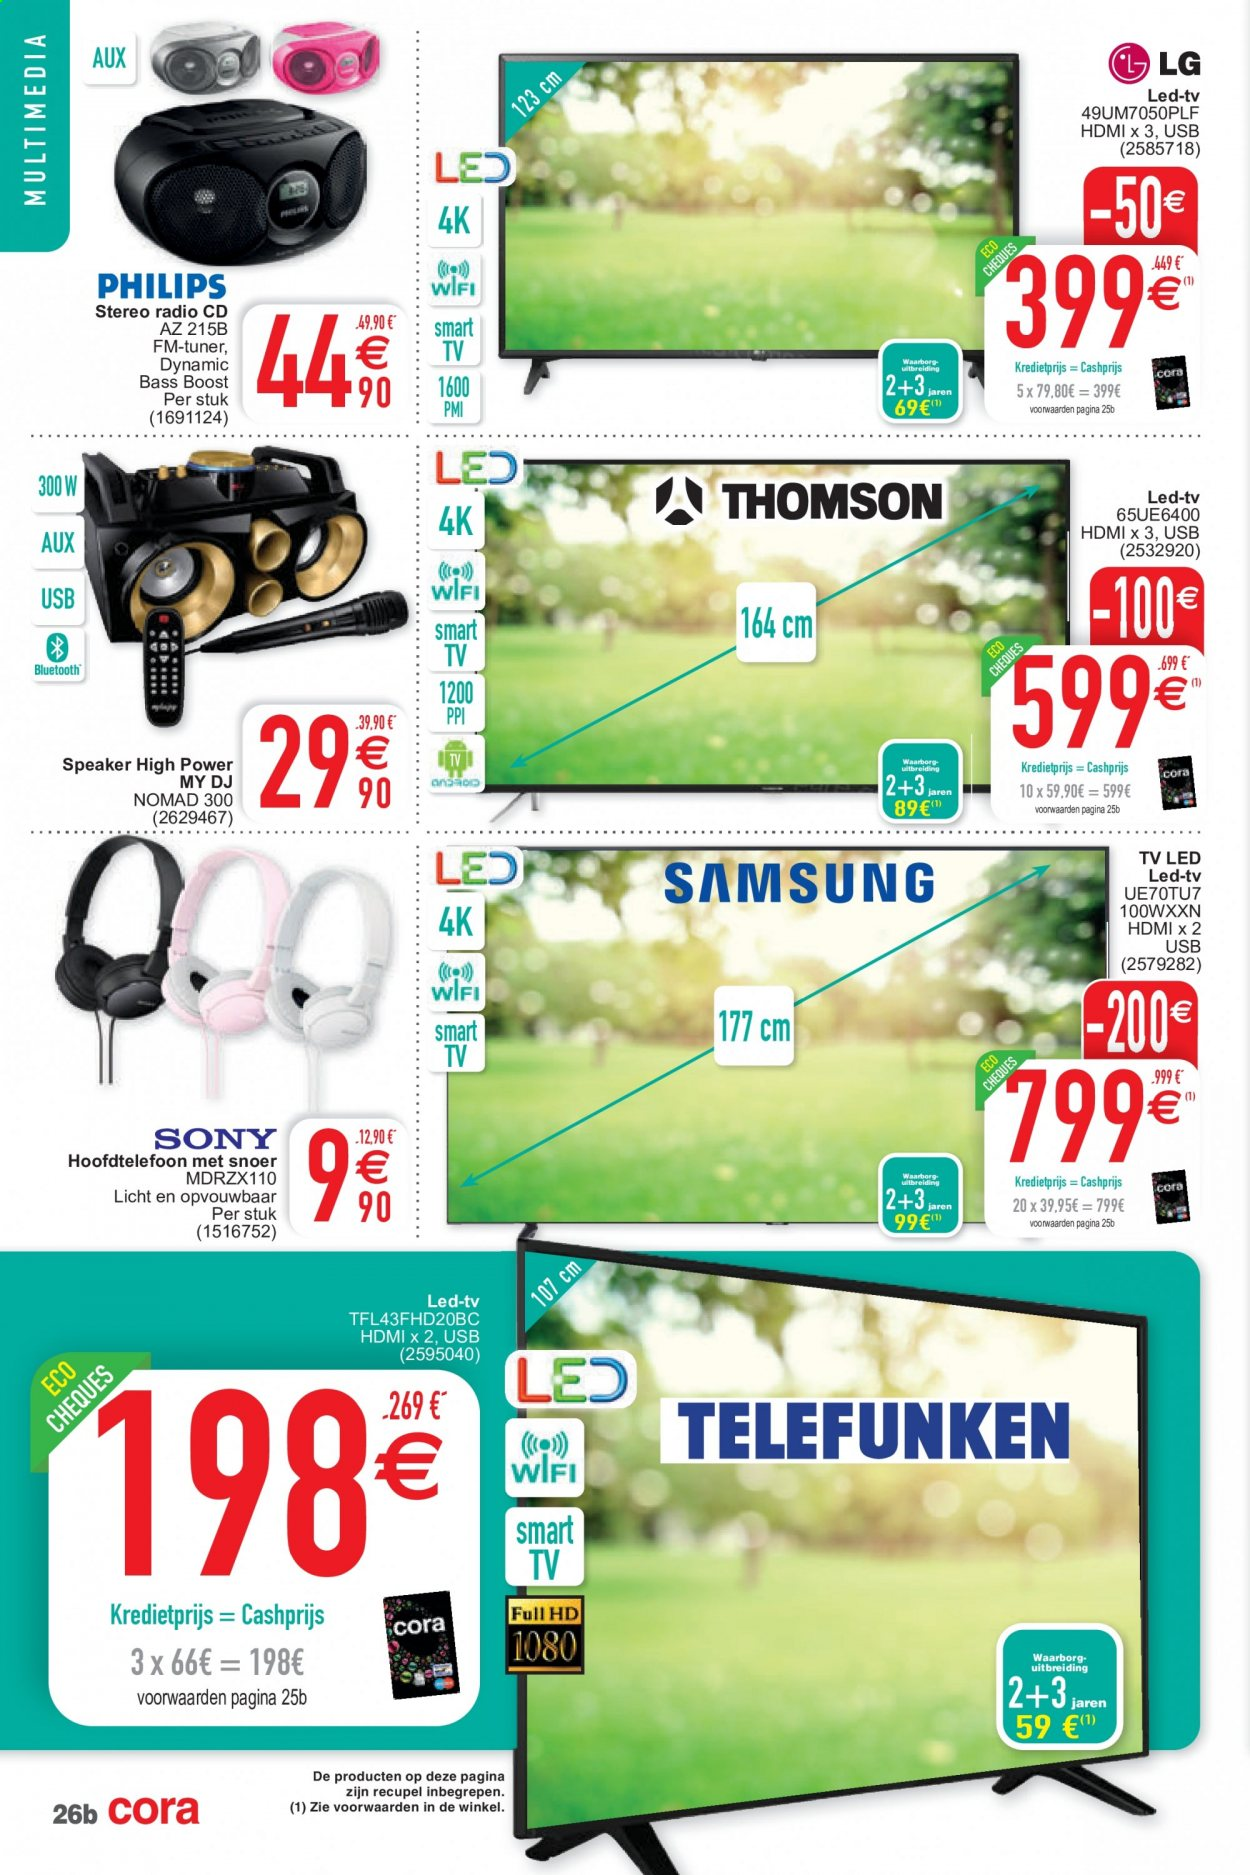 Catalogue Cora - 15.9.2020 - 28.9.2020 - Produits soldés - hdmi, tv led, usb, smart tv, radio. Page 26.